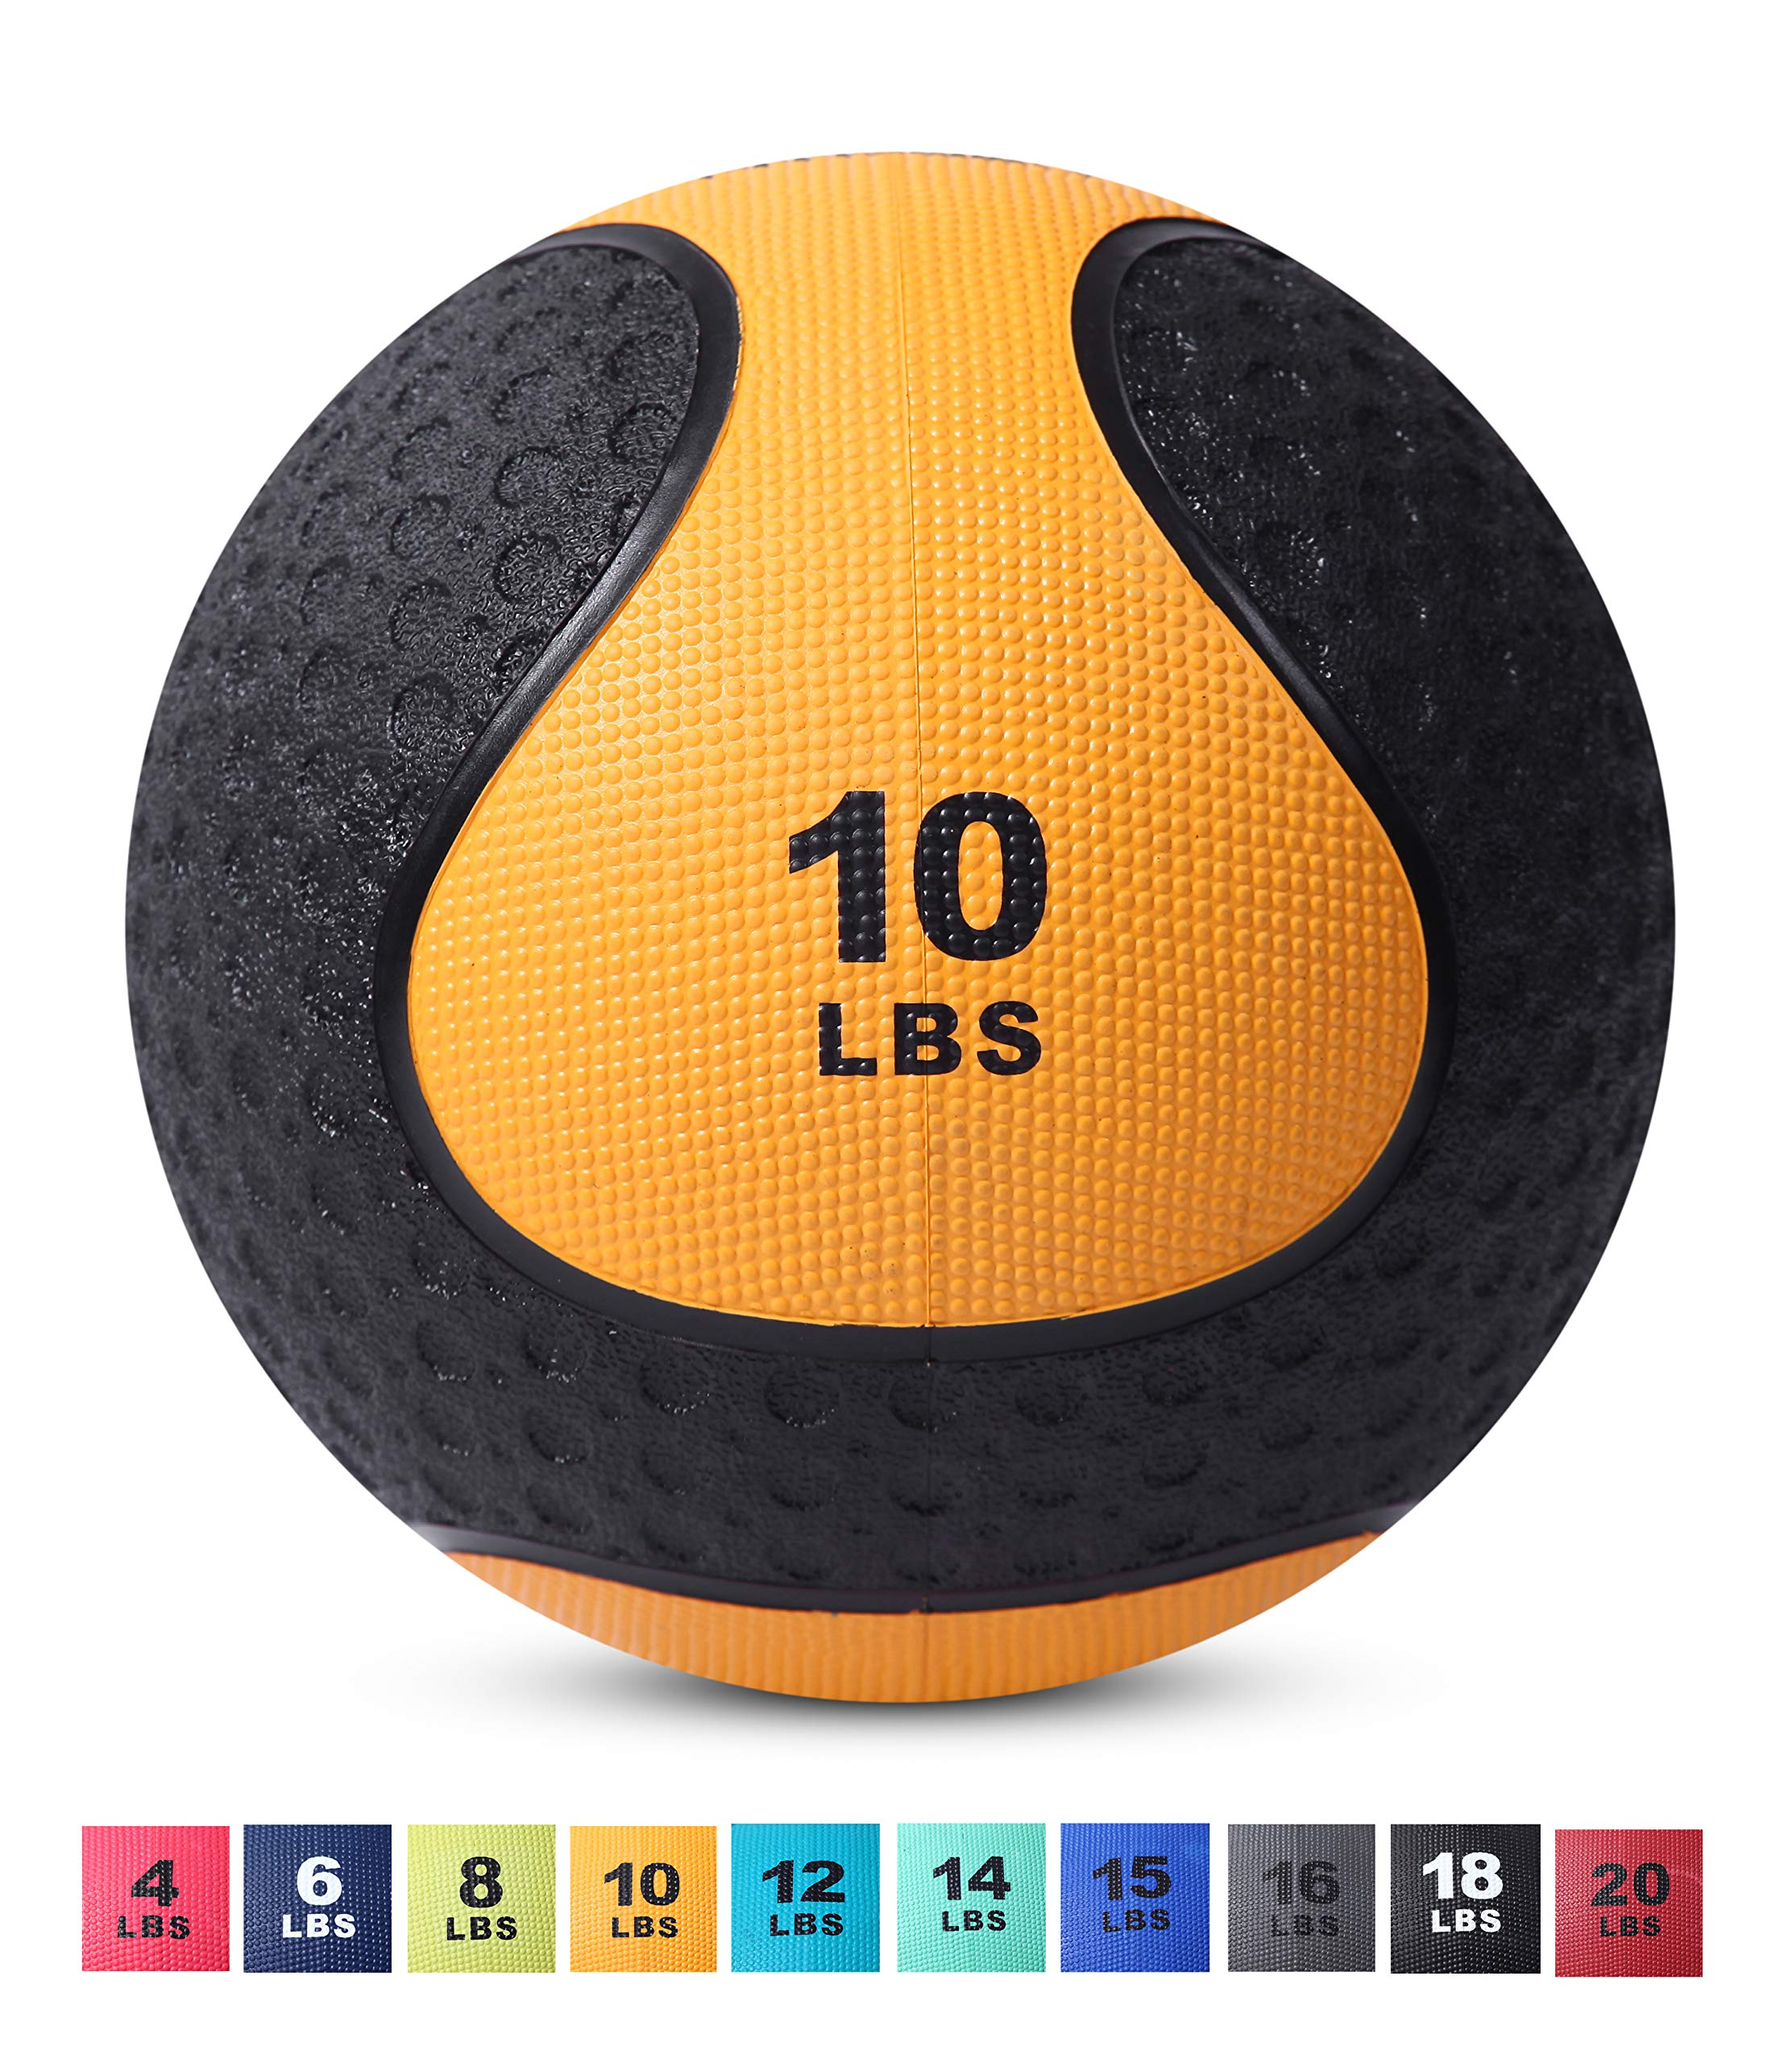 Day 1 Fitness Medicine Exercise Ball with Dual Texture for Superior Grip 10 Pounds - Fitness Balls for Plyometrics, Workouts - Improves Balance, Flexibility, Coordination